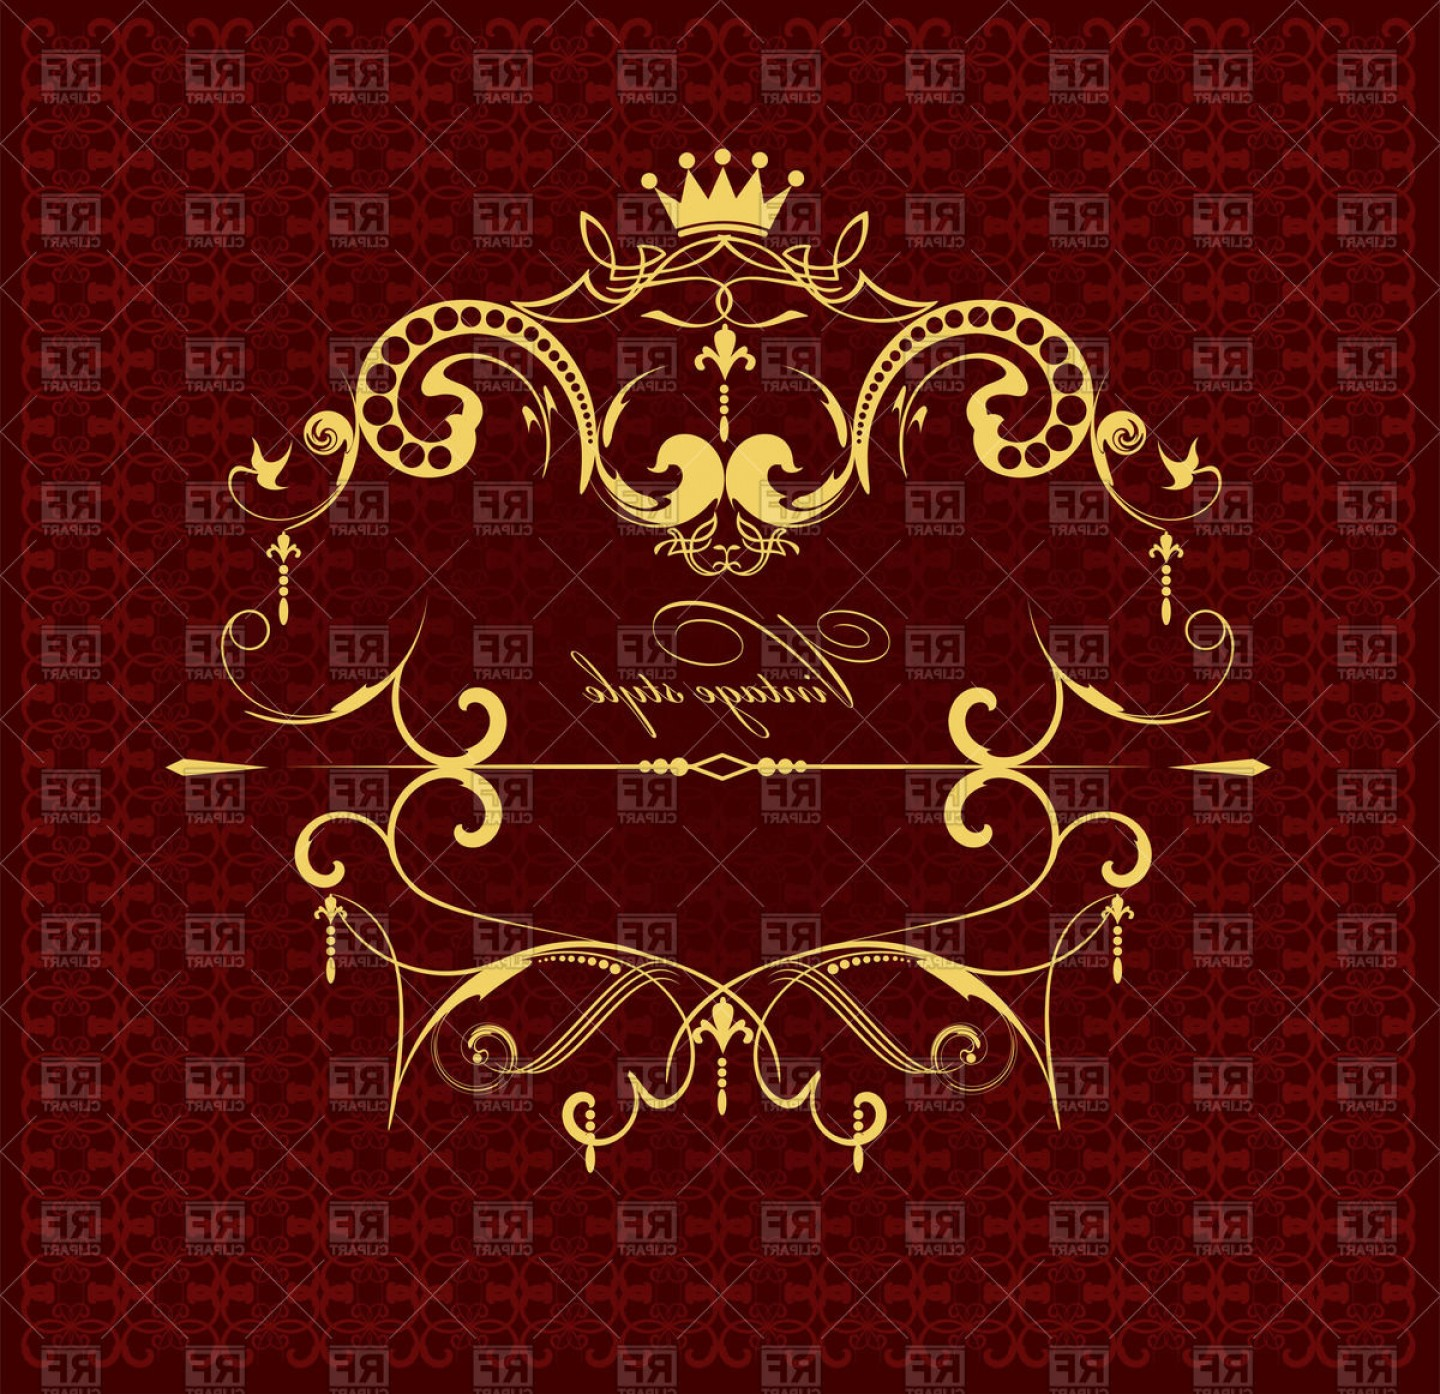 Gold Ornate Borders Vector: Golden Ornate Royal Frame Elegant Victorian Ornament Vector Clipart